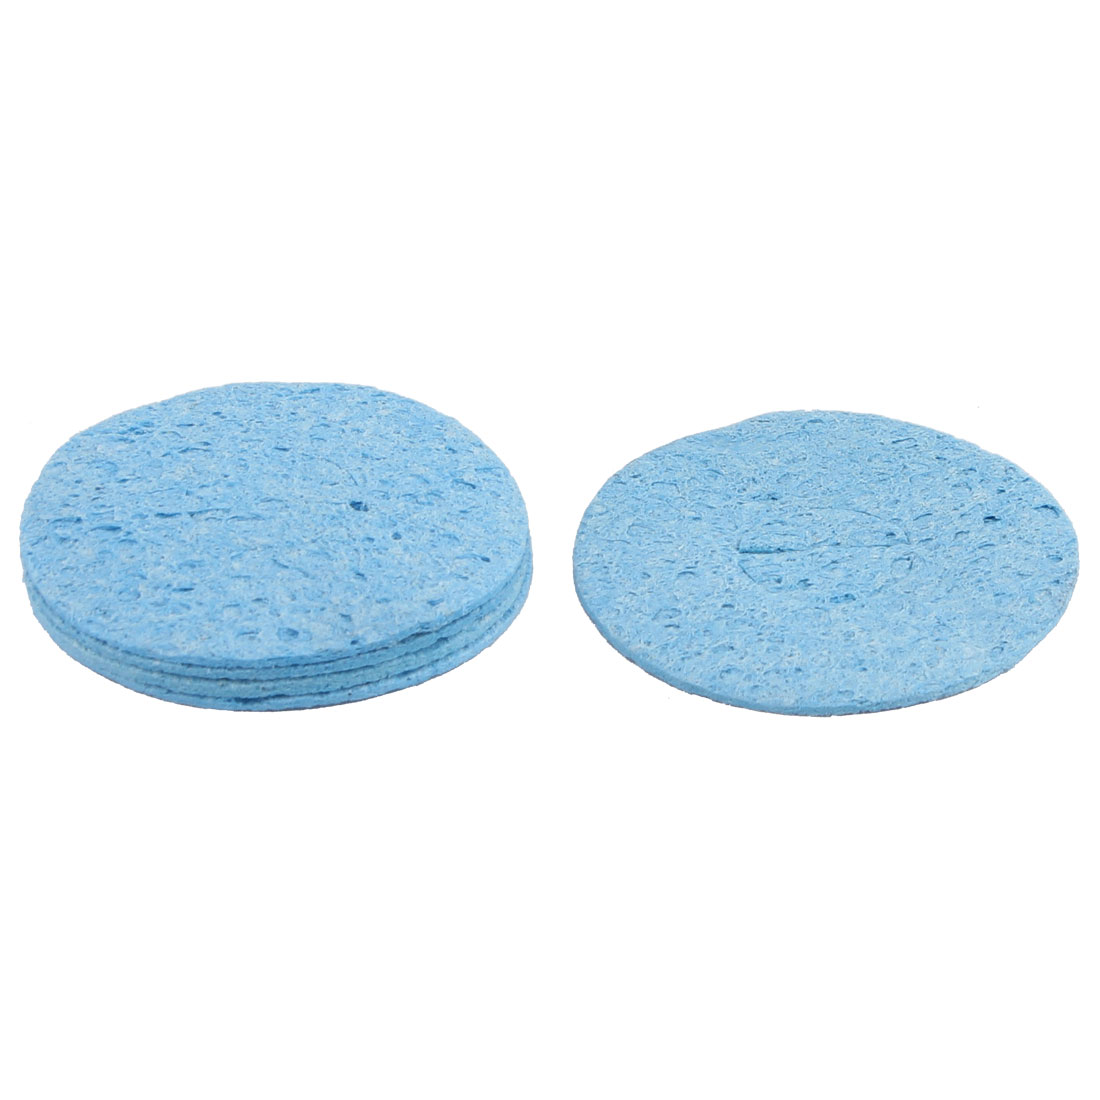 Solder Iron Cleaning Sponge Replacement Blue 6cm Dia 5 PCS